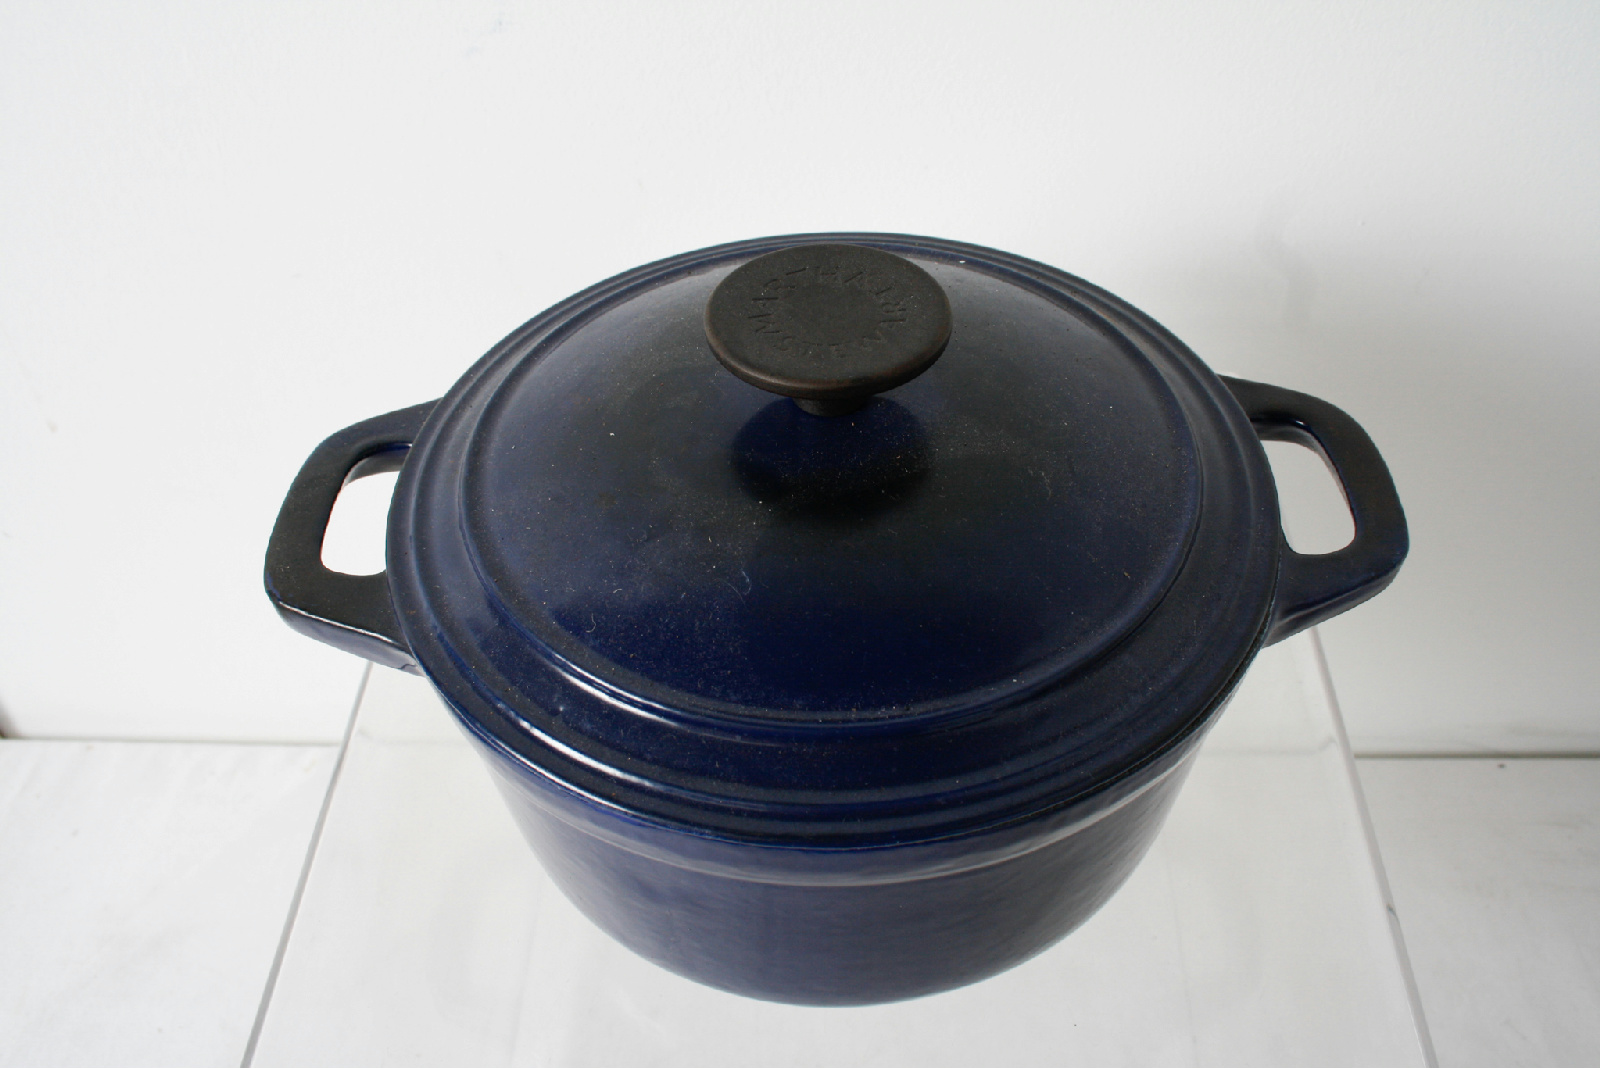 martha stewart collection blue enameled cast iron dutch oven with lid ebay. Black Bedroom Furniture Sets. Home Design Ideas